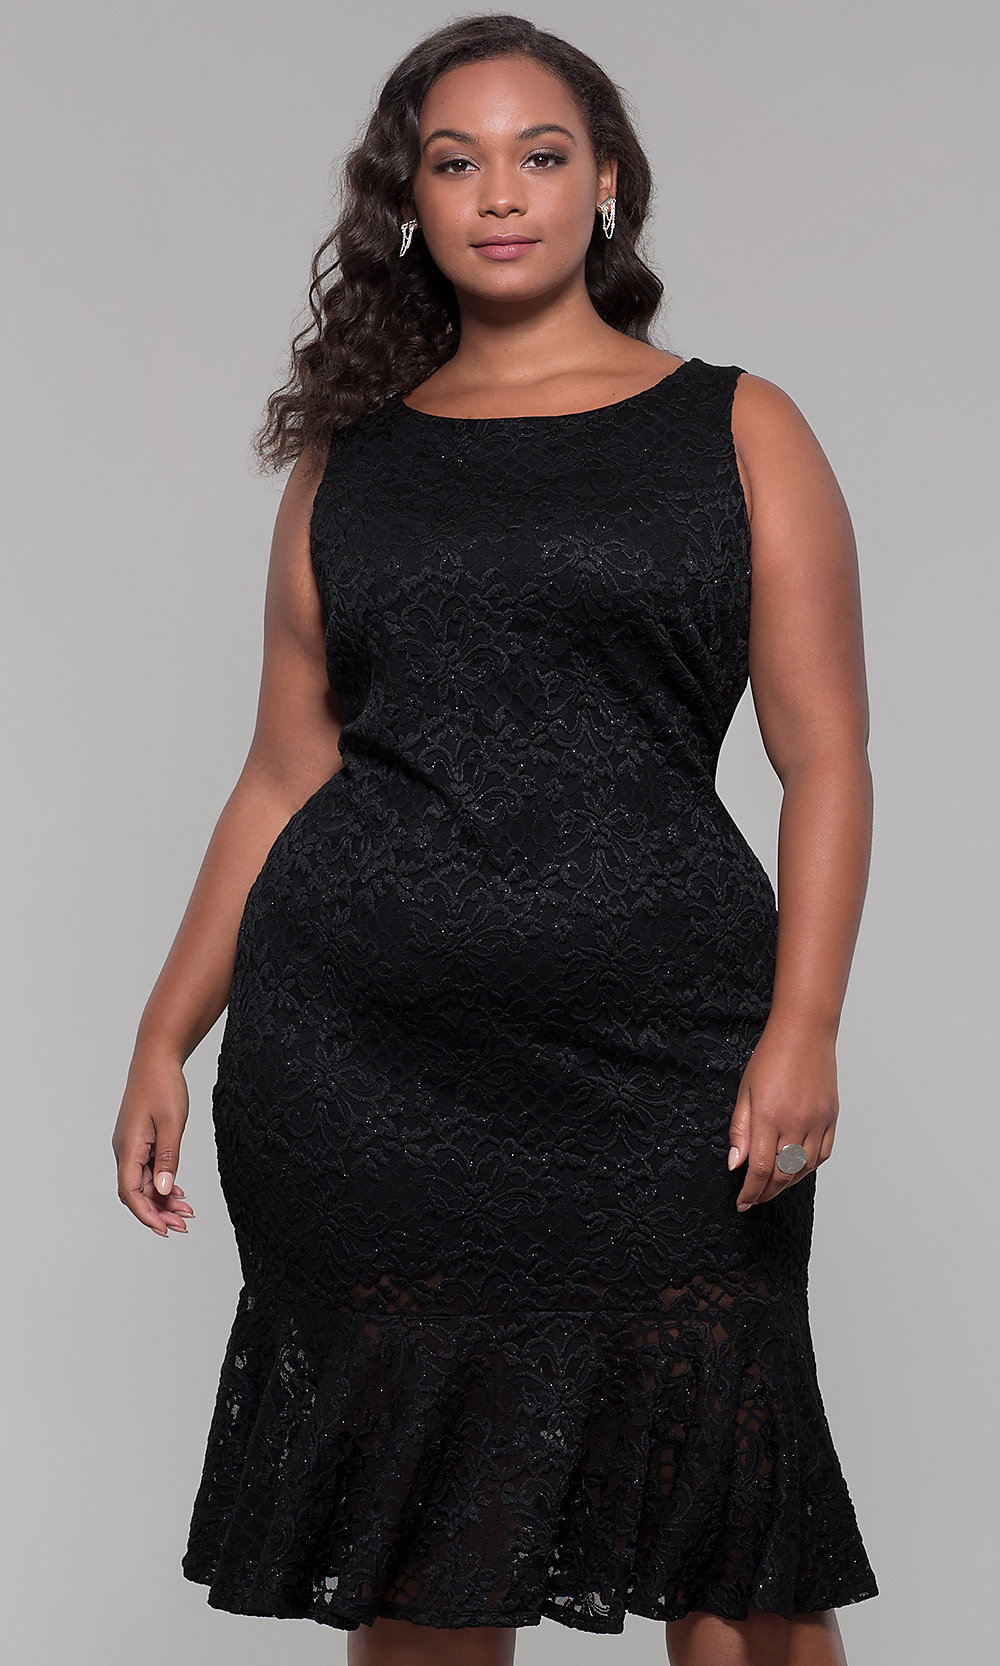 Bodycon wedding guest dress for plus size